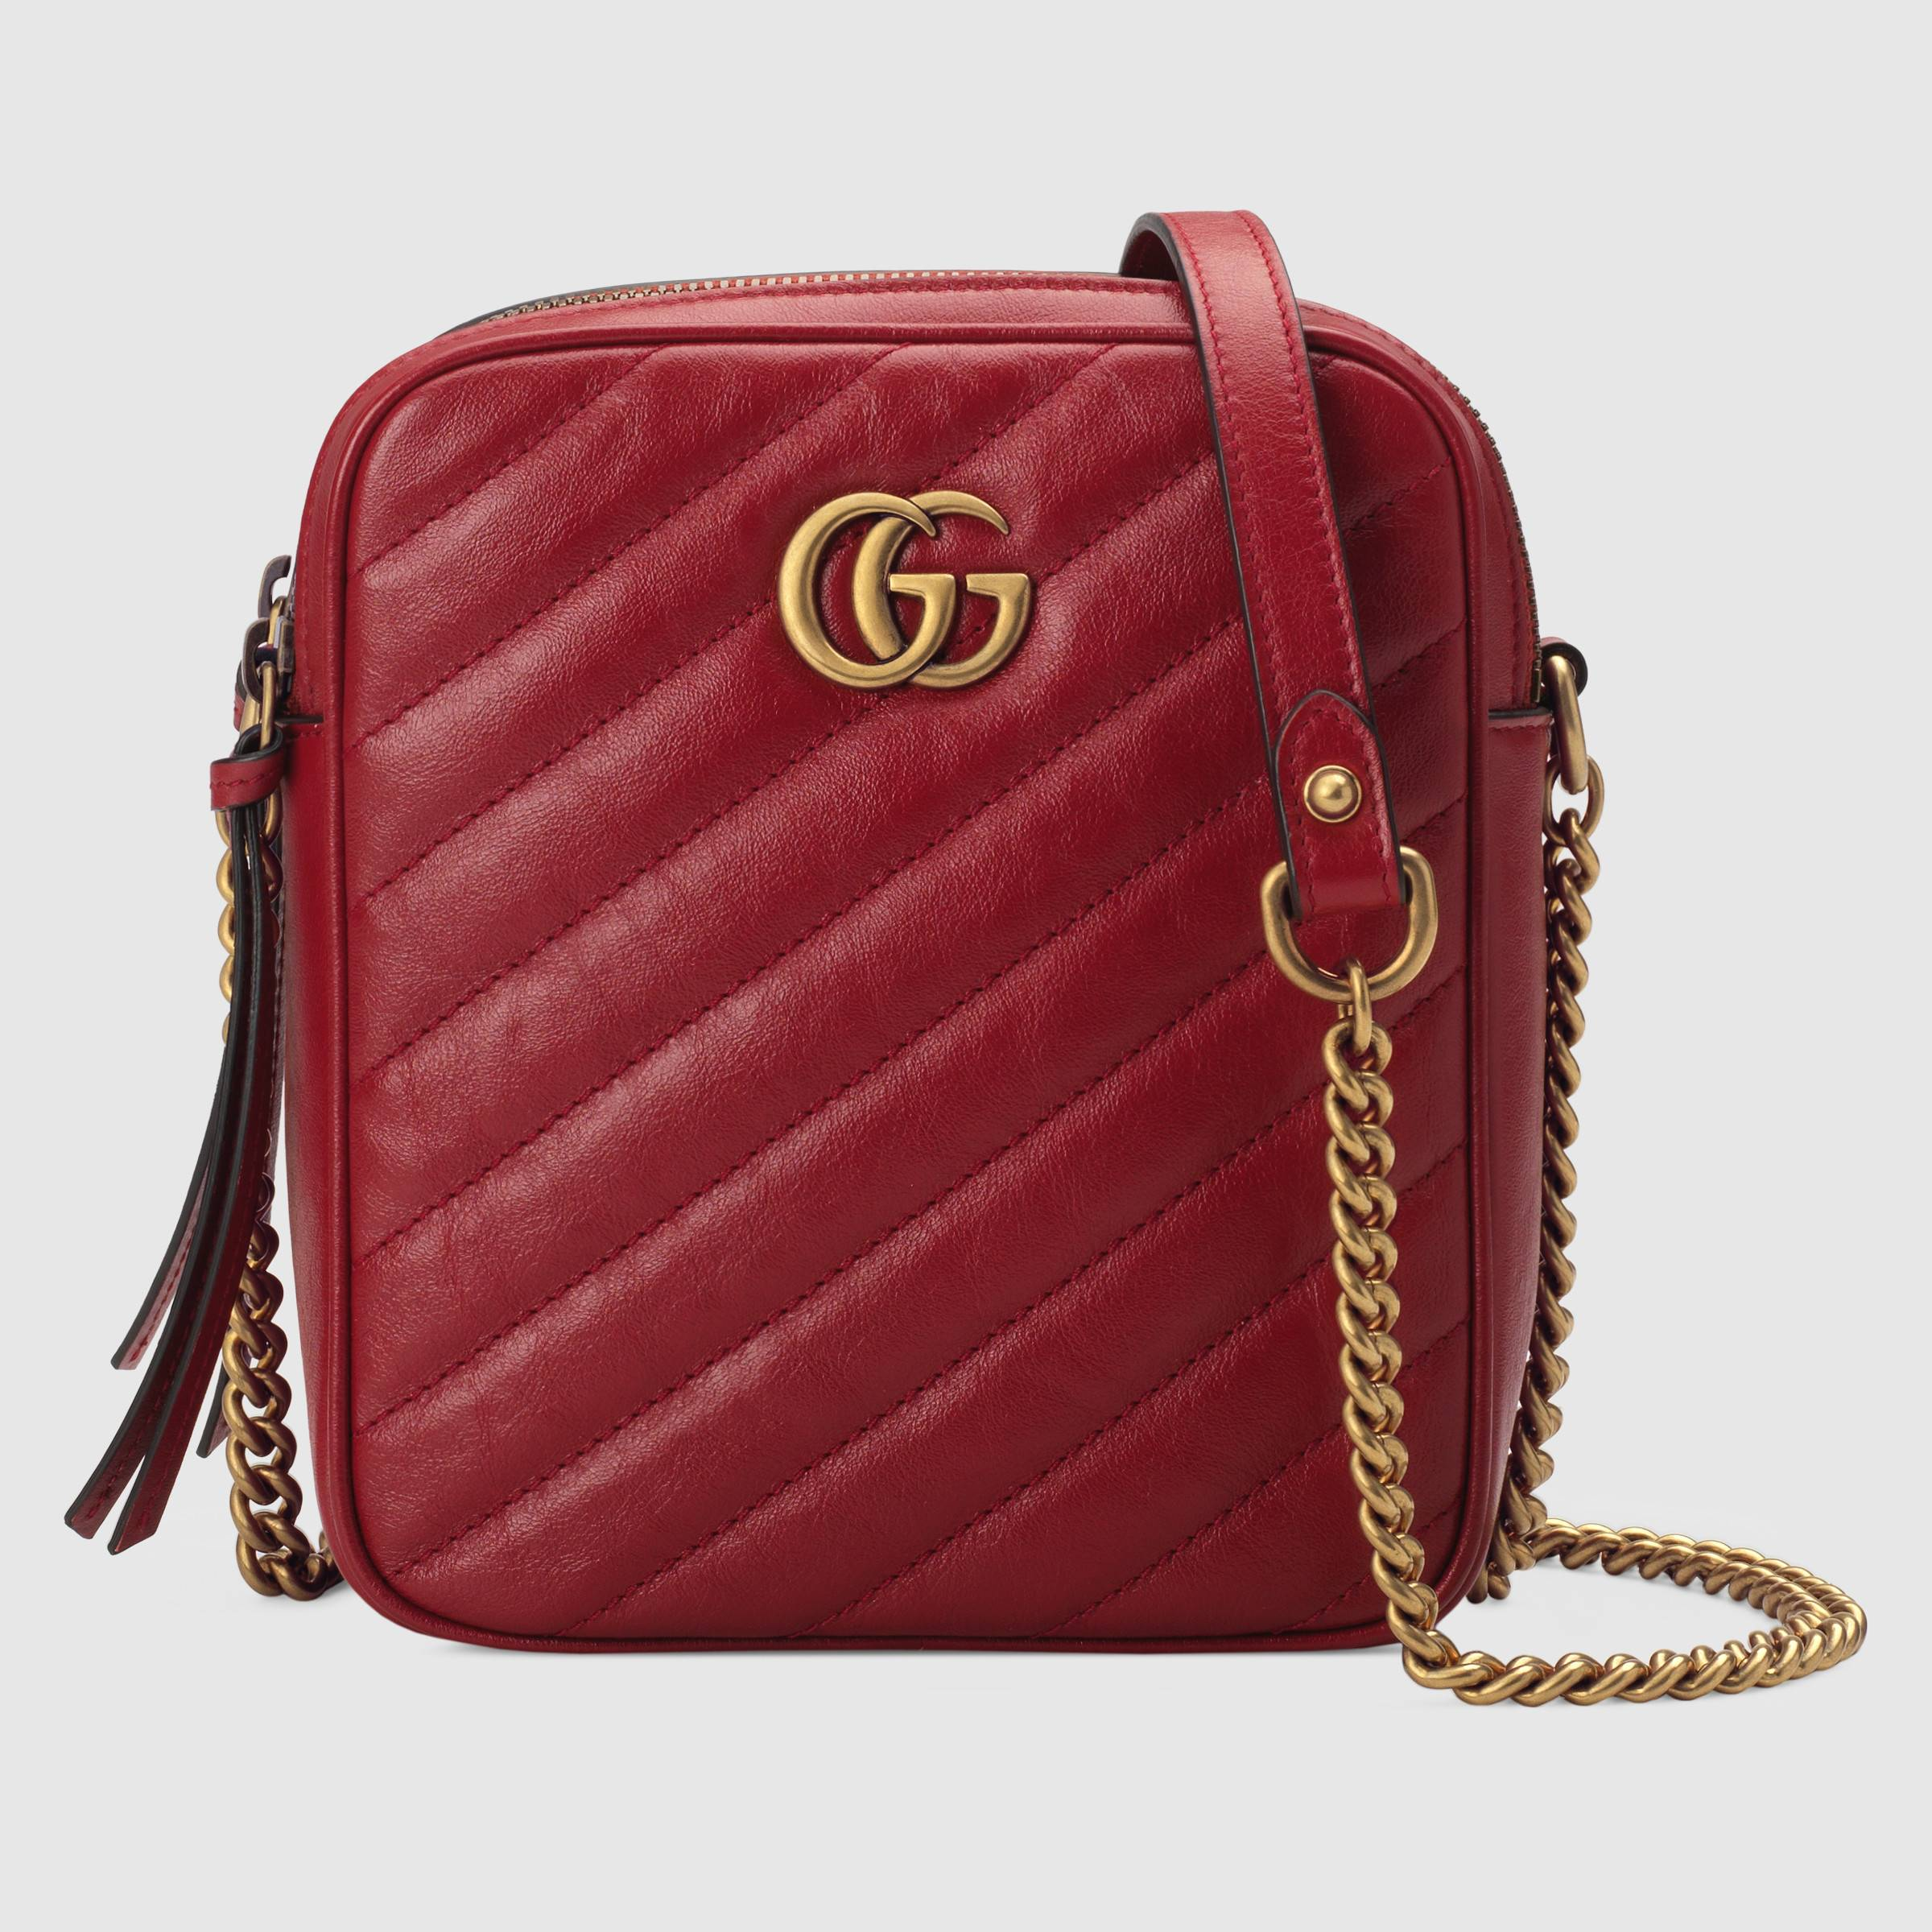 122ad69be2b6 12 Must Have Gucci Bags For 2019